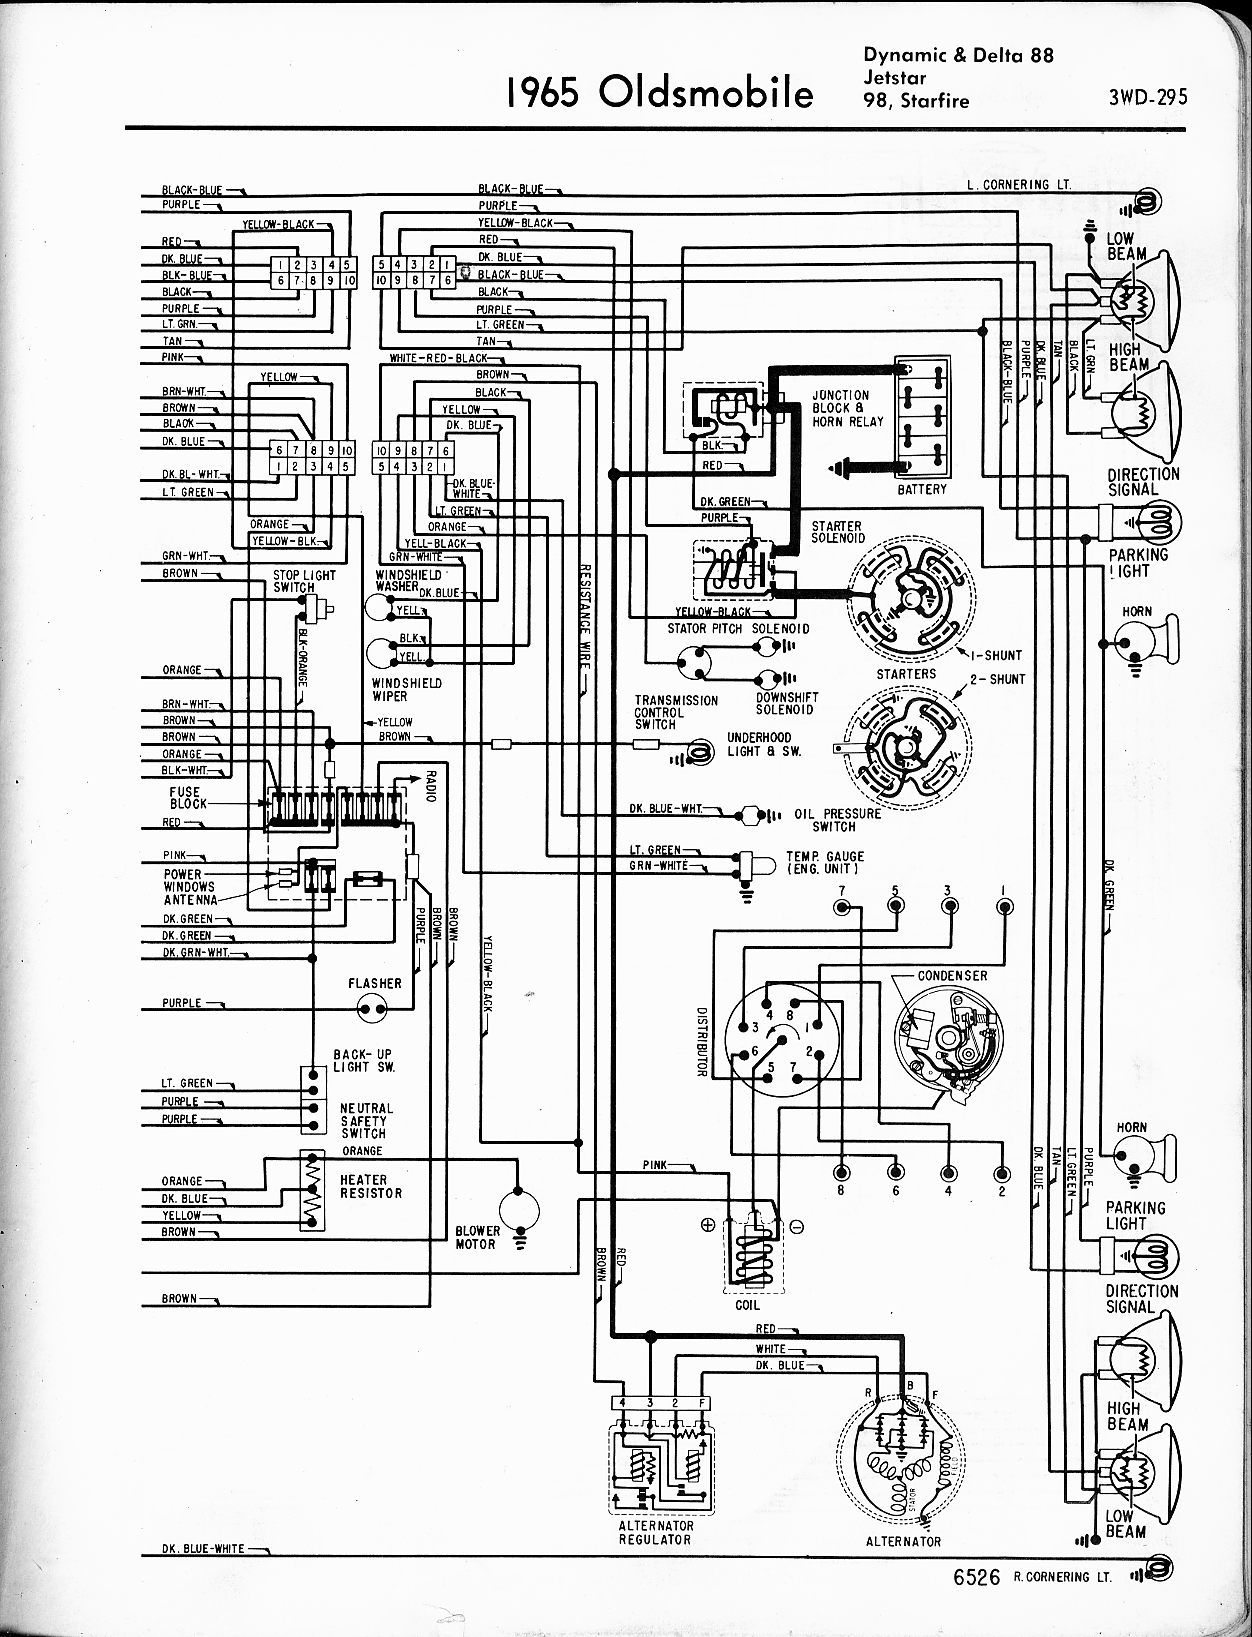 1941 Cadillac Wiring Diagram Schematic together with 1959 Cadillac Vacuum Diagram additionally 2005 Chrysler Crossfire Wiring Diagram moreover 280z Transmission Diagram furthermore 1960 Cadillac Vin Number Location. on 1955 cadillac body parts